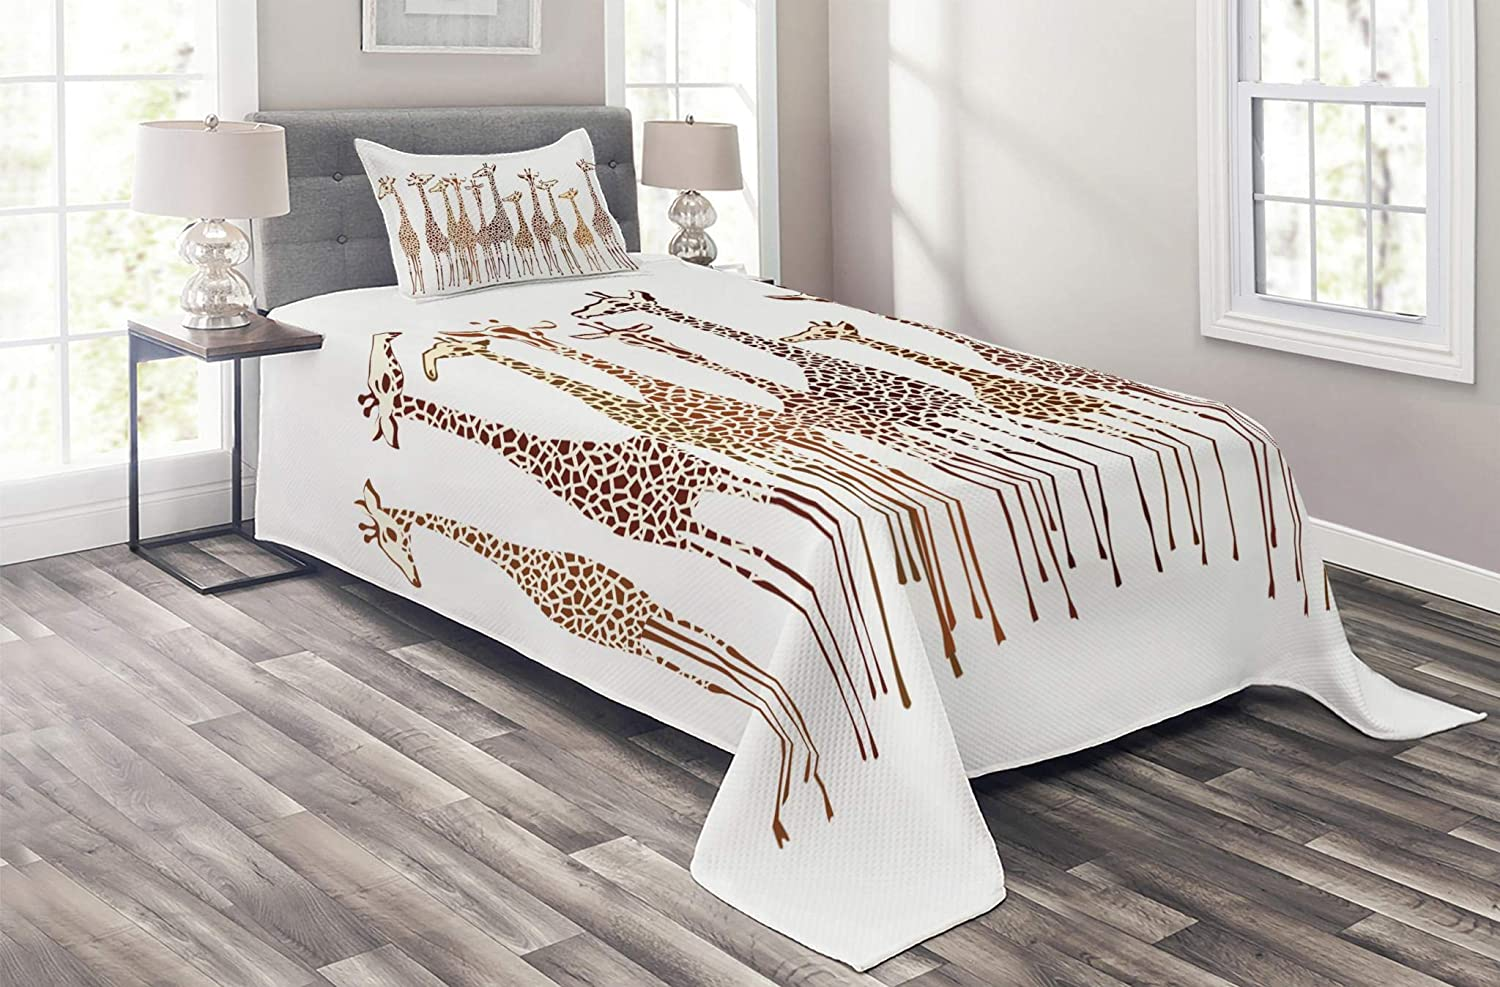 Lunarable Safari Coverlet Set Twin Size, Tropical Giraffes Exotic Climates Wilderness Savannah Animals Illustration, 2 Piece Decorative Quilted Bedspread Set with 1 Pillow Sham, Brown